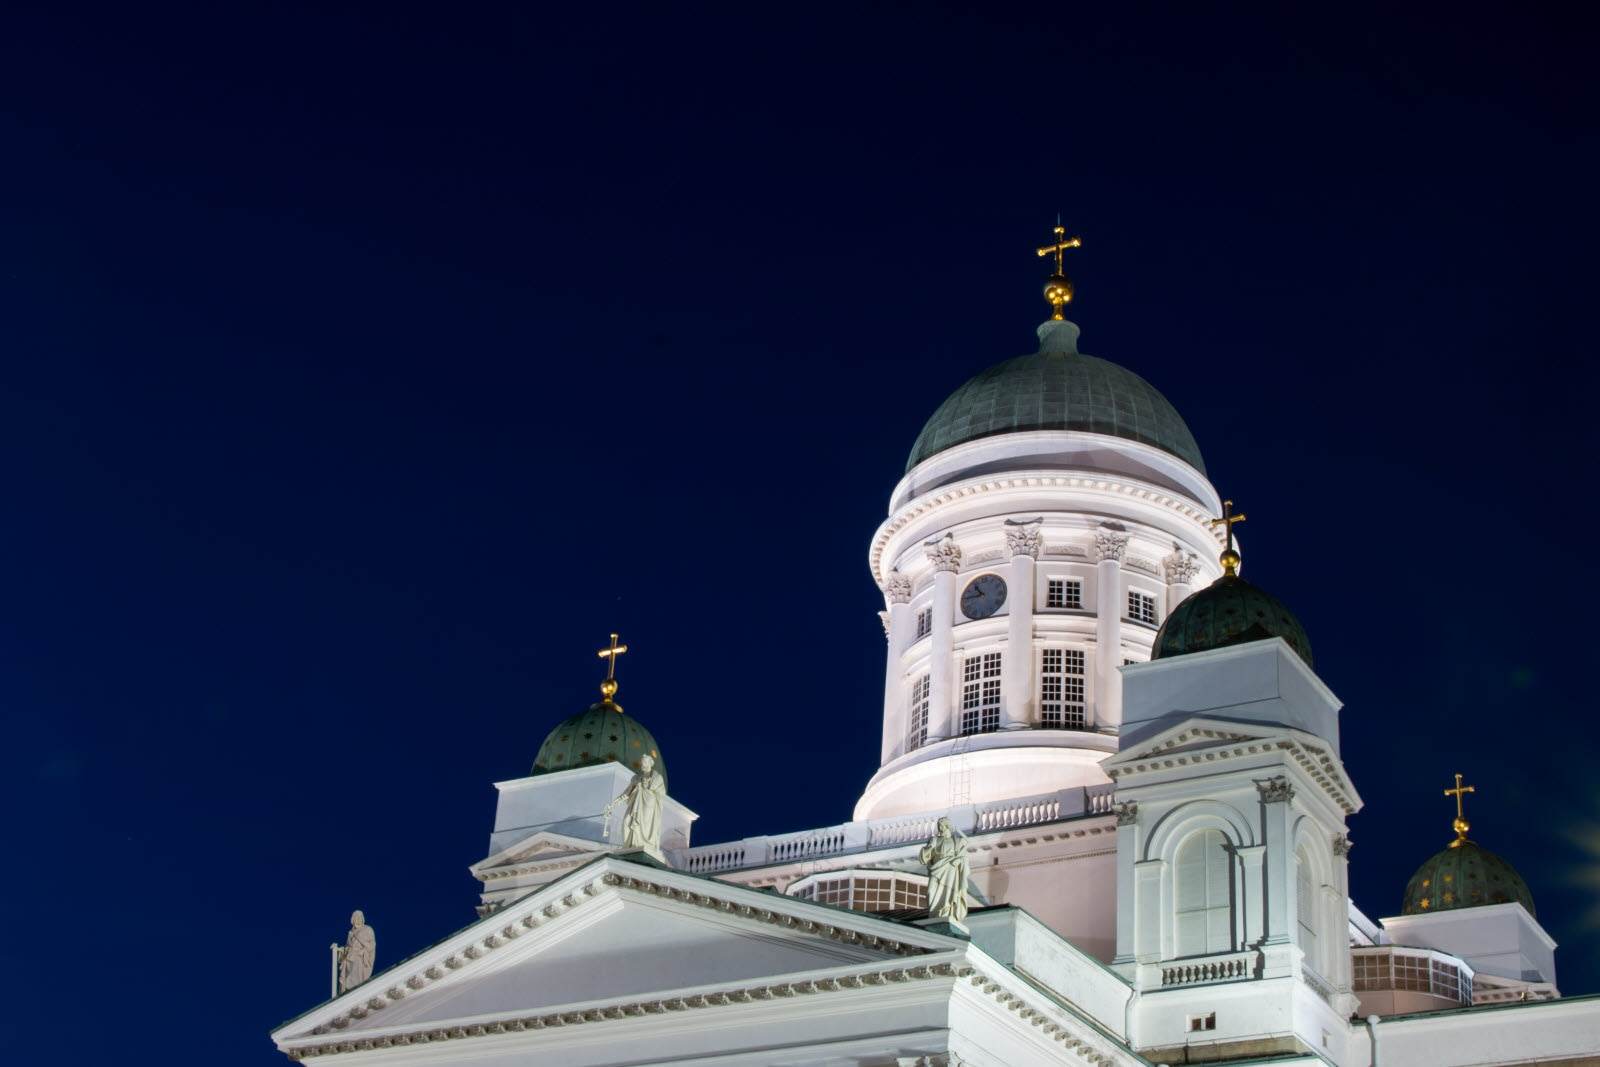 Illuminated Helsinki Cathedral at night.